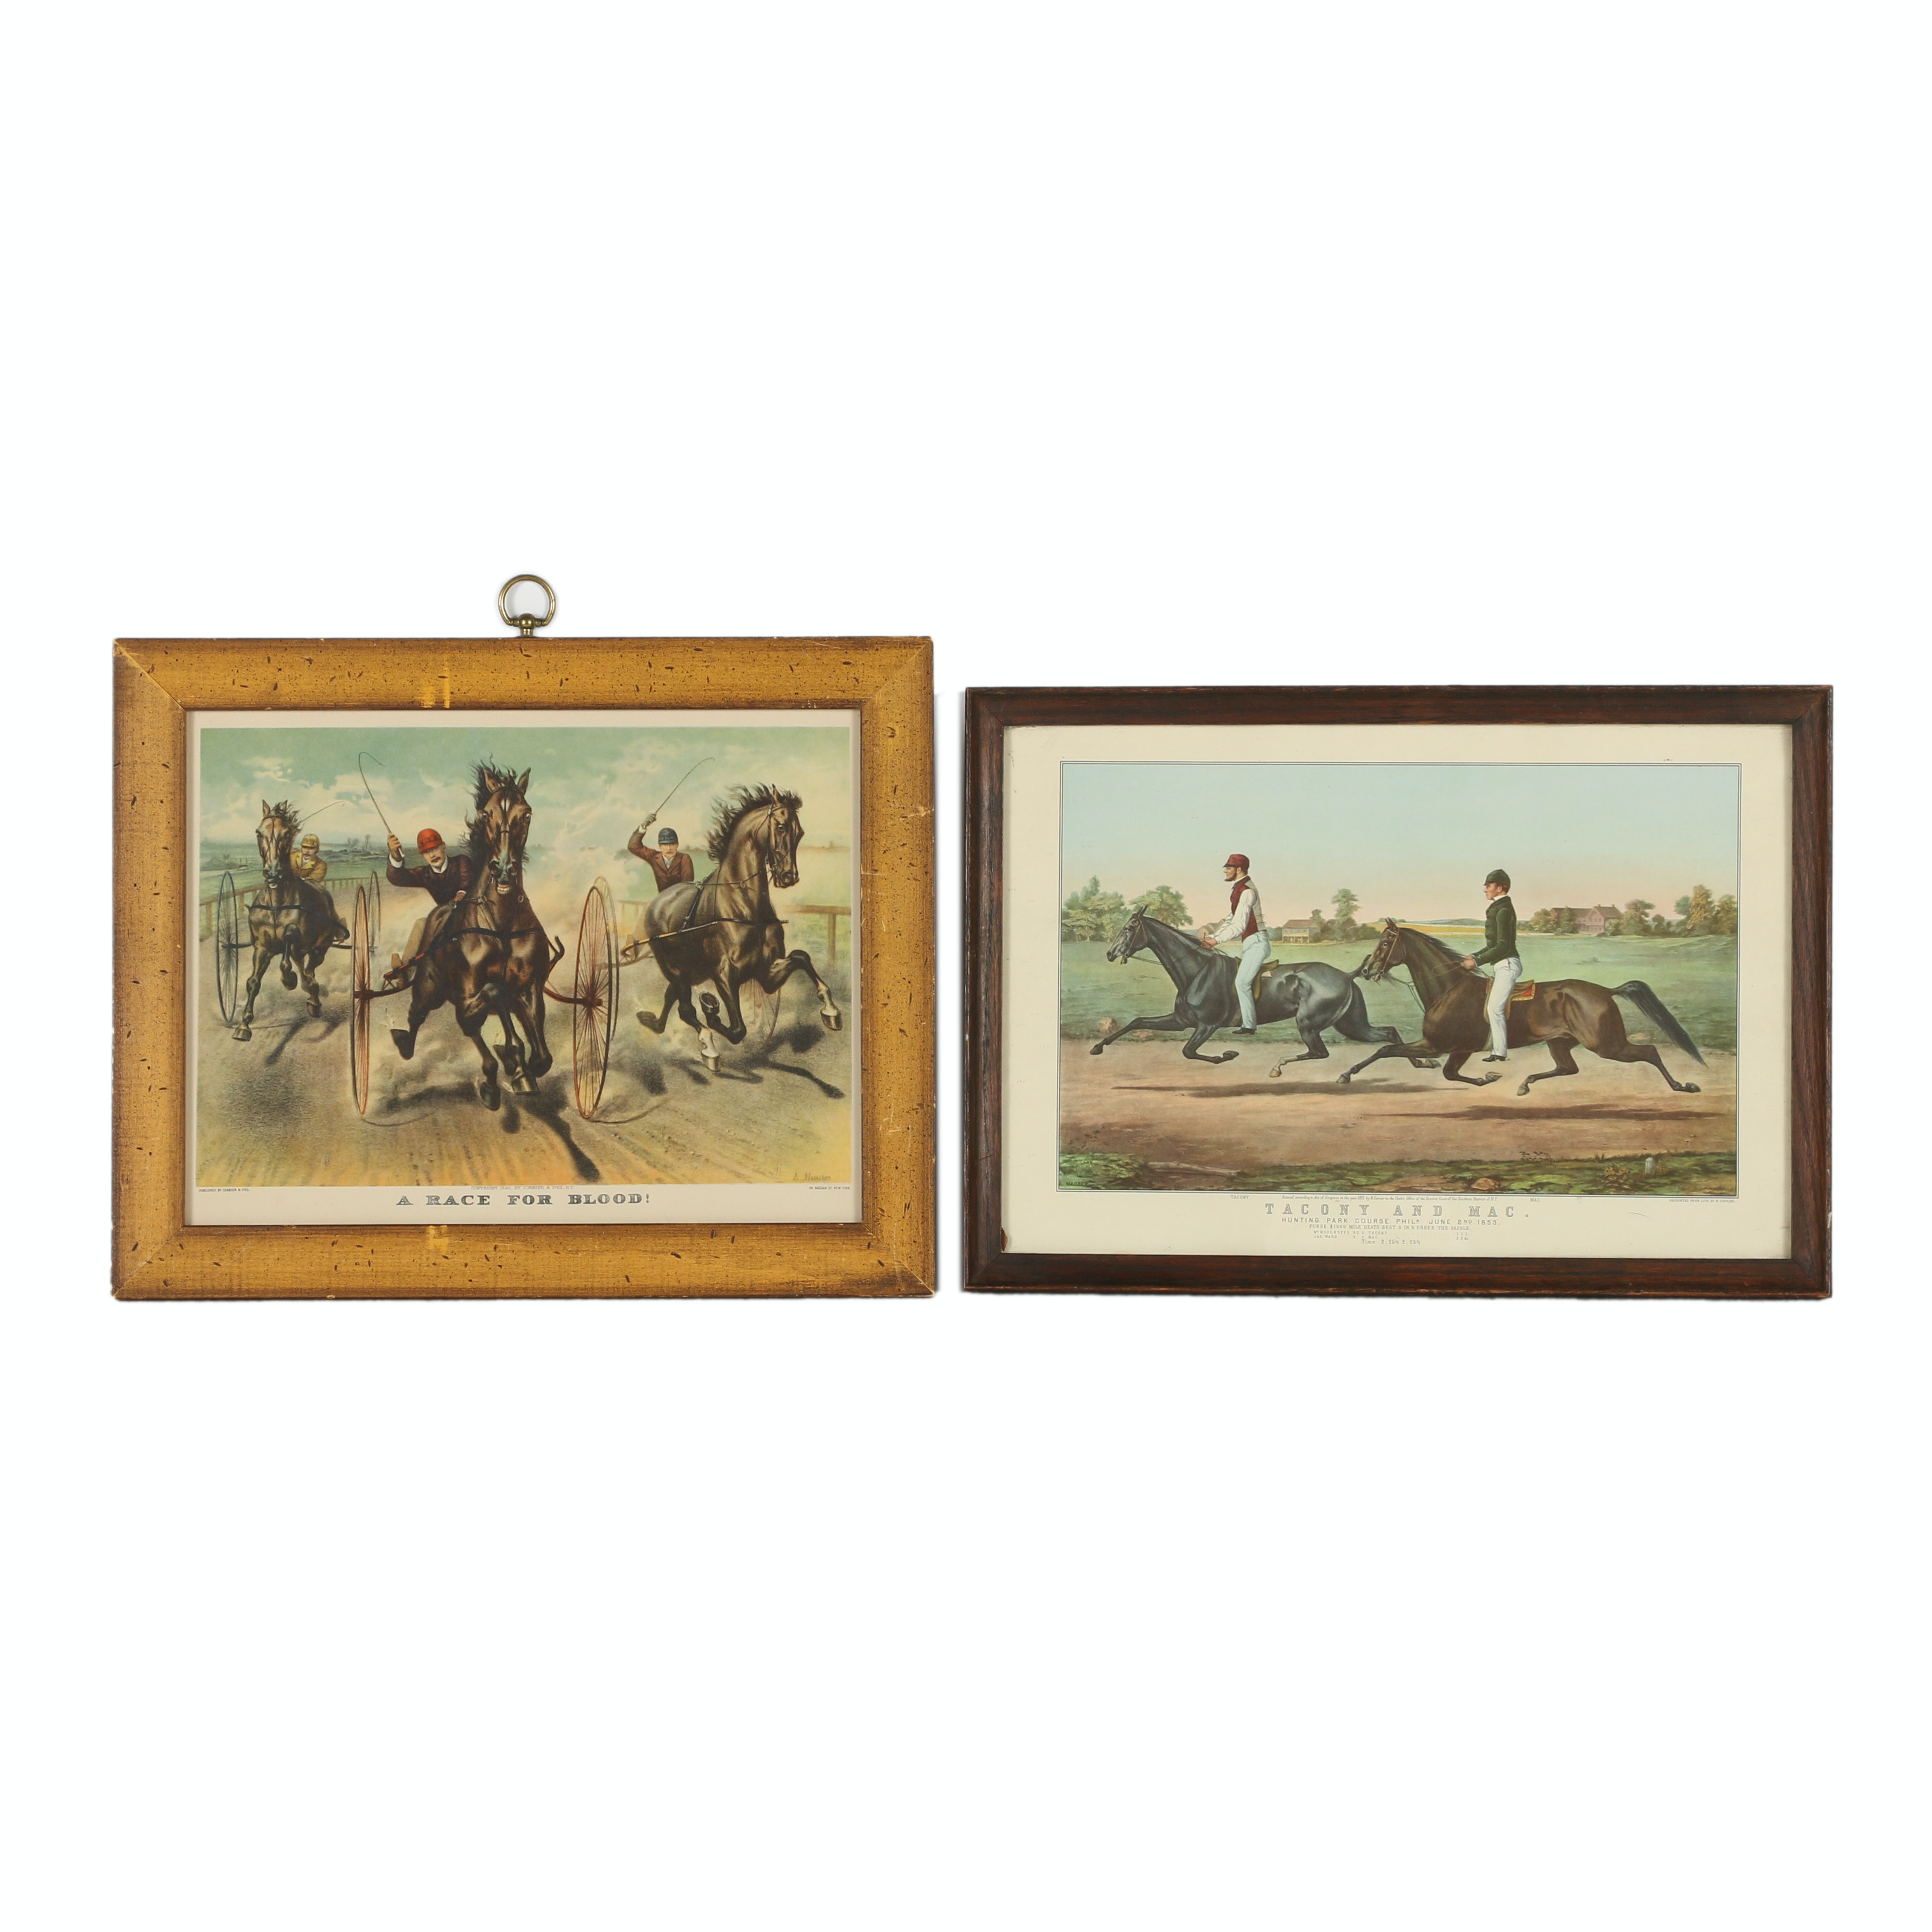 Pair of Reproduction Offset Lithographs on Paper of Horse Racing Scenes